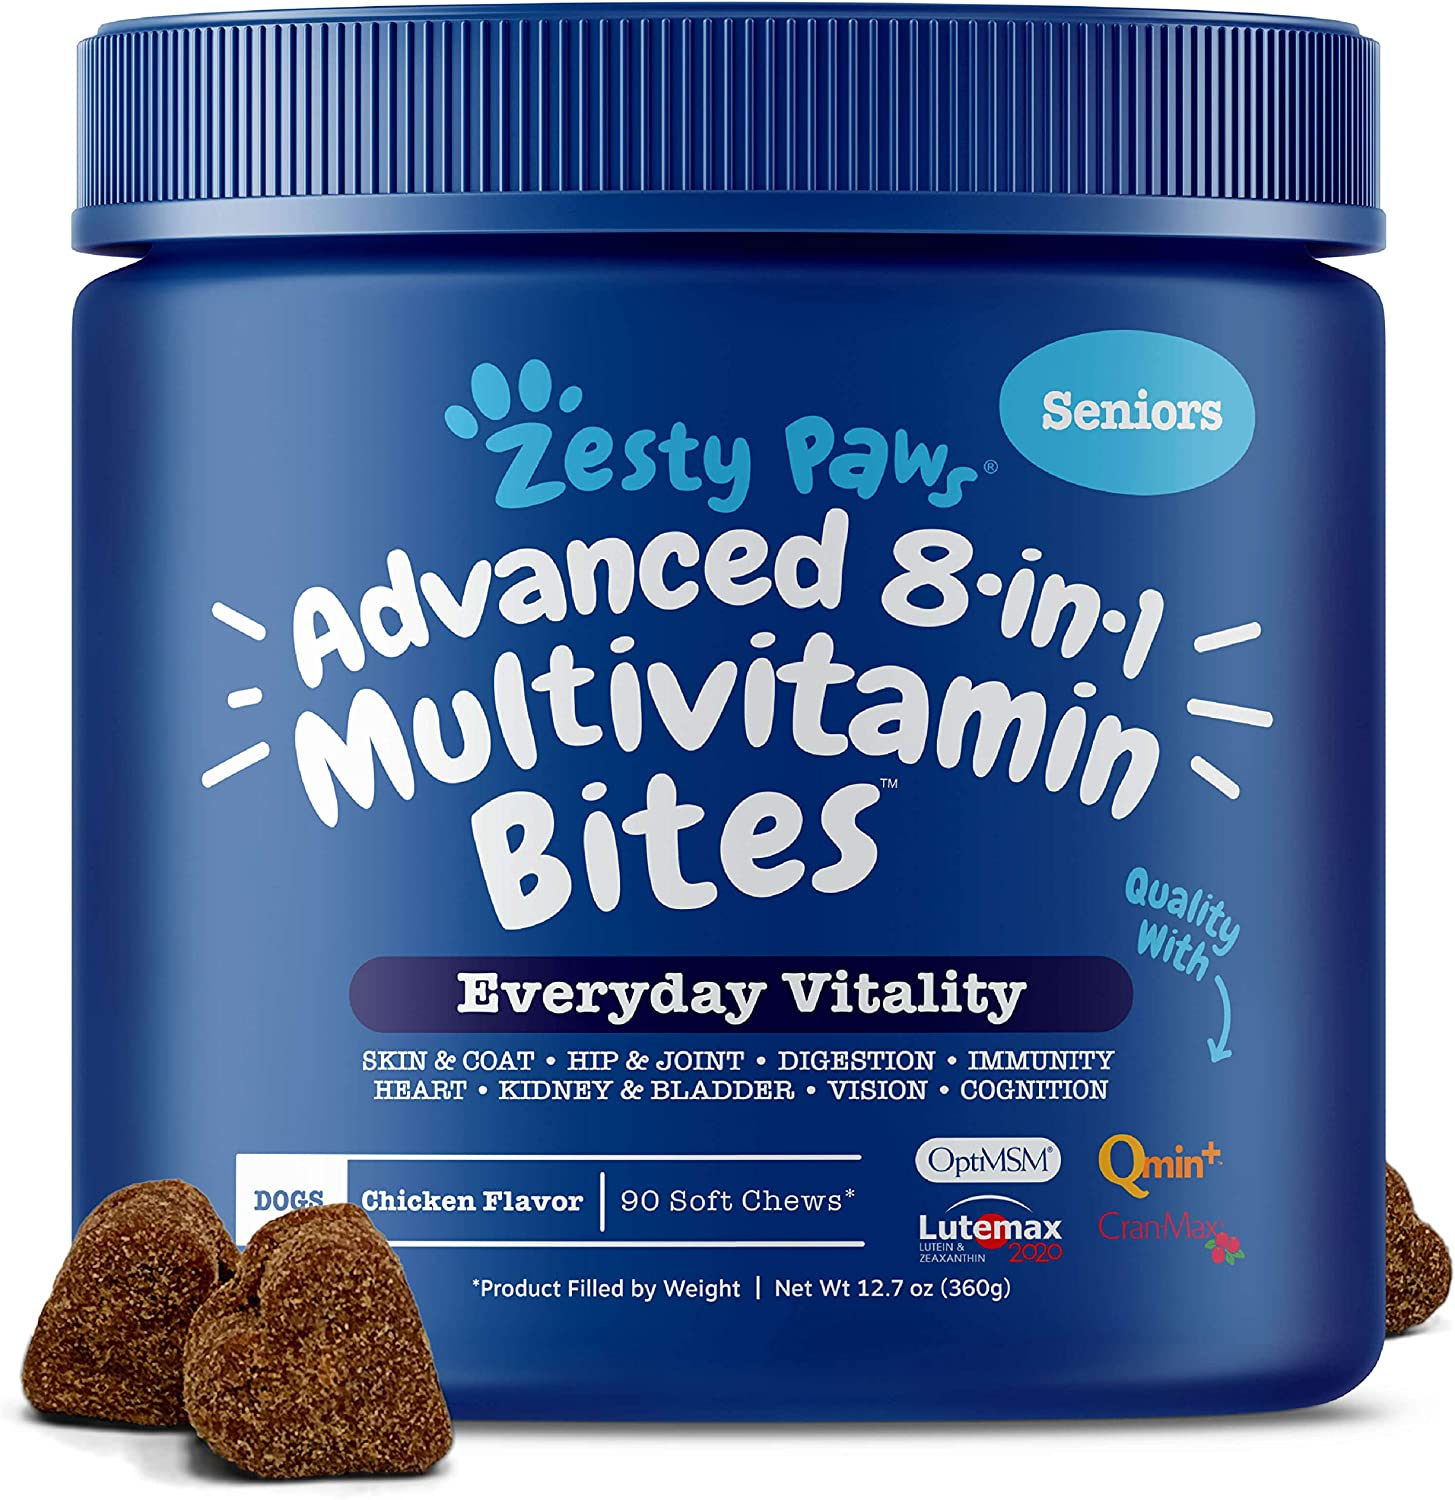 Zesty Paws Senior Advanced Multivitamin for Dogs – Glucosamine Chondroitin for Hip Joint Arthritis Relief – Dog Vitamins Fish Oil for Skin Coat – Digestive Enzymes MSM CoQ10